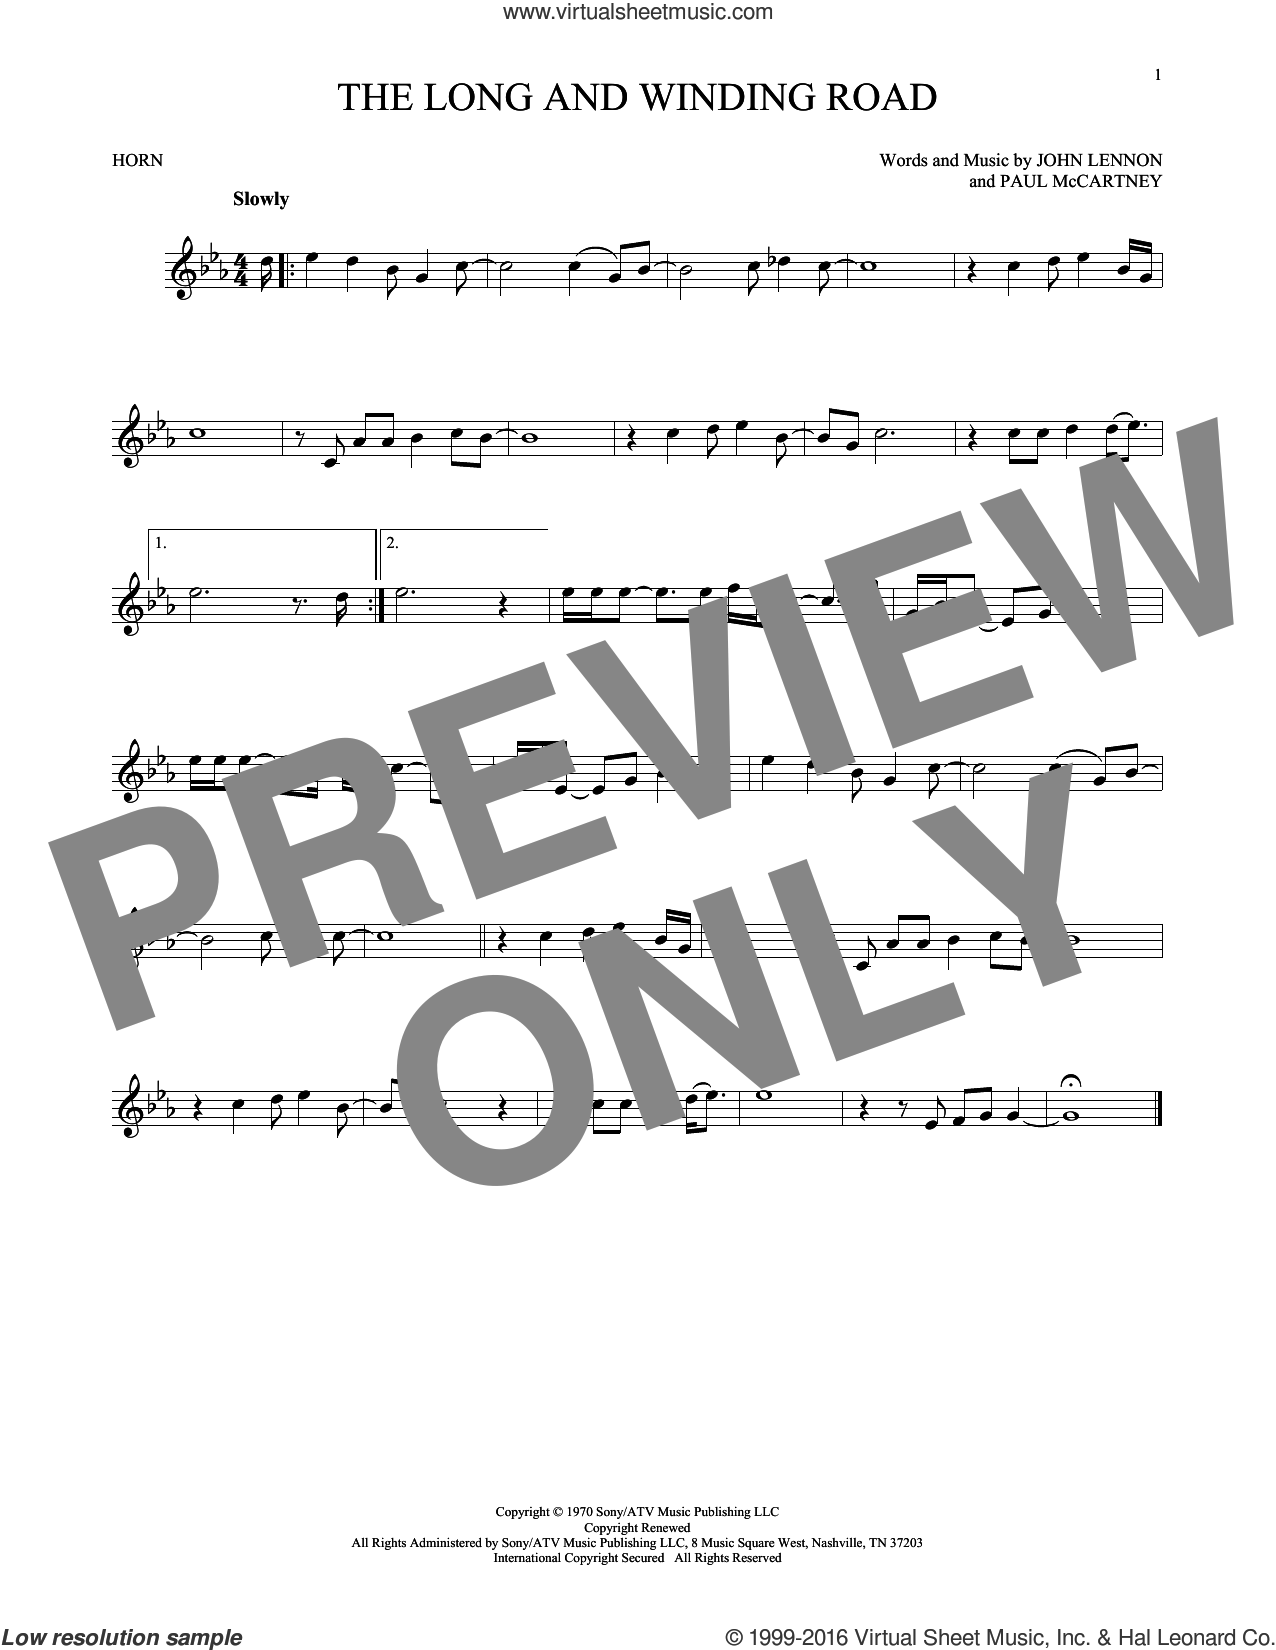 The Long And Winding Road sheet music for horn solo by Paul McCartney